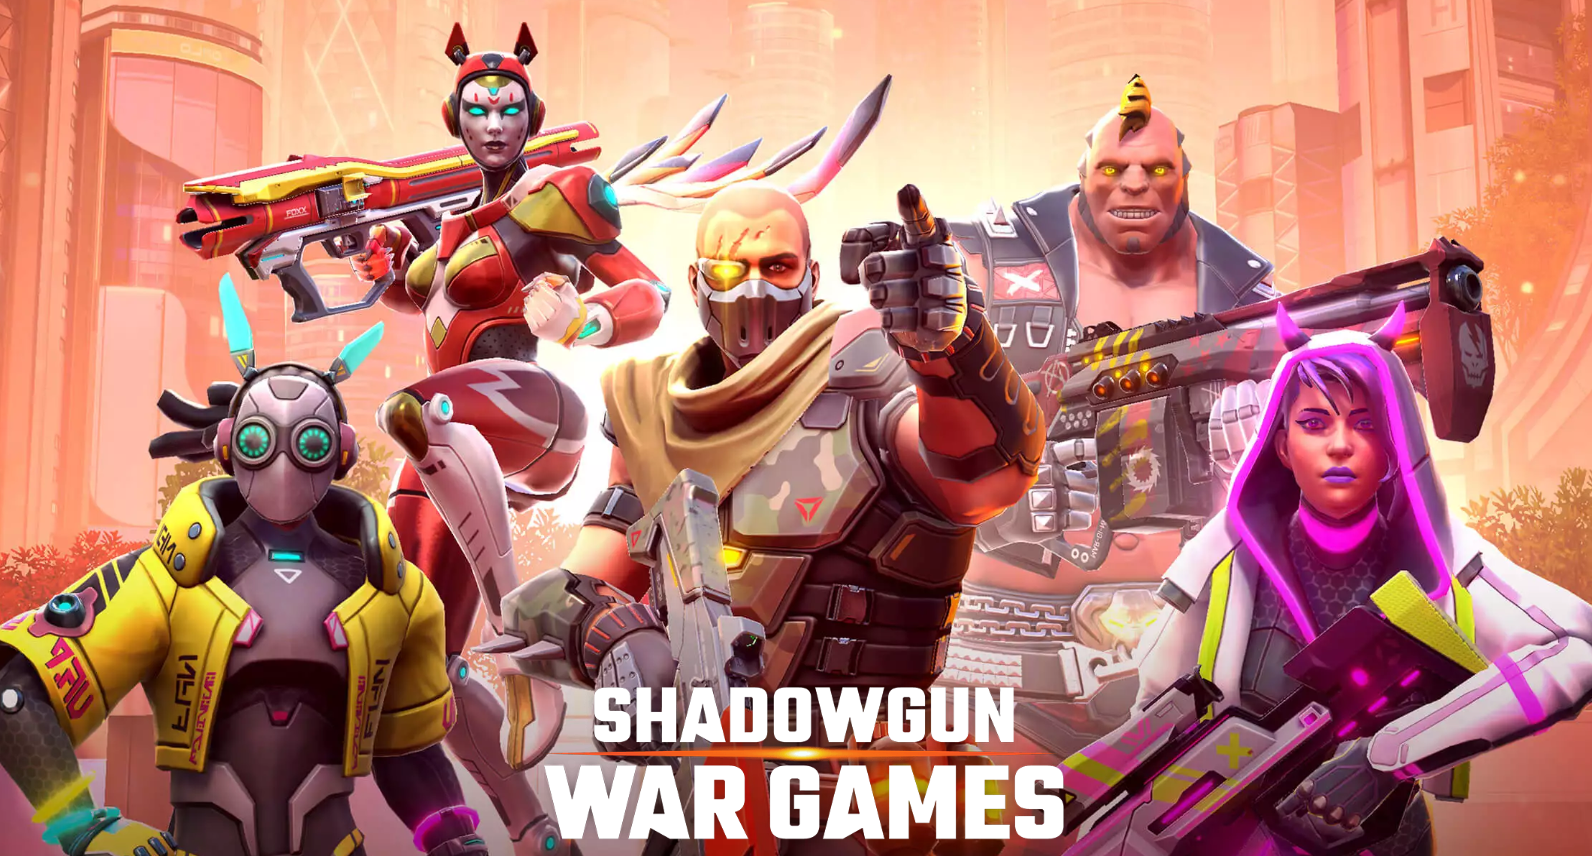 Shadowgun War Games: First Impressions - The Mobile Overwatch? 25